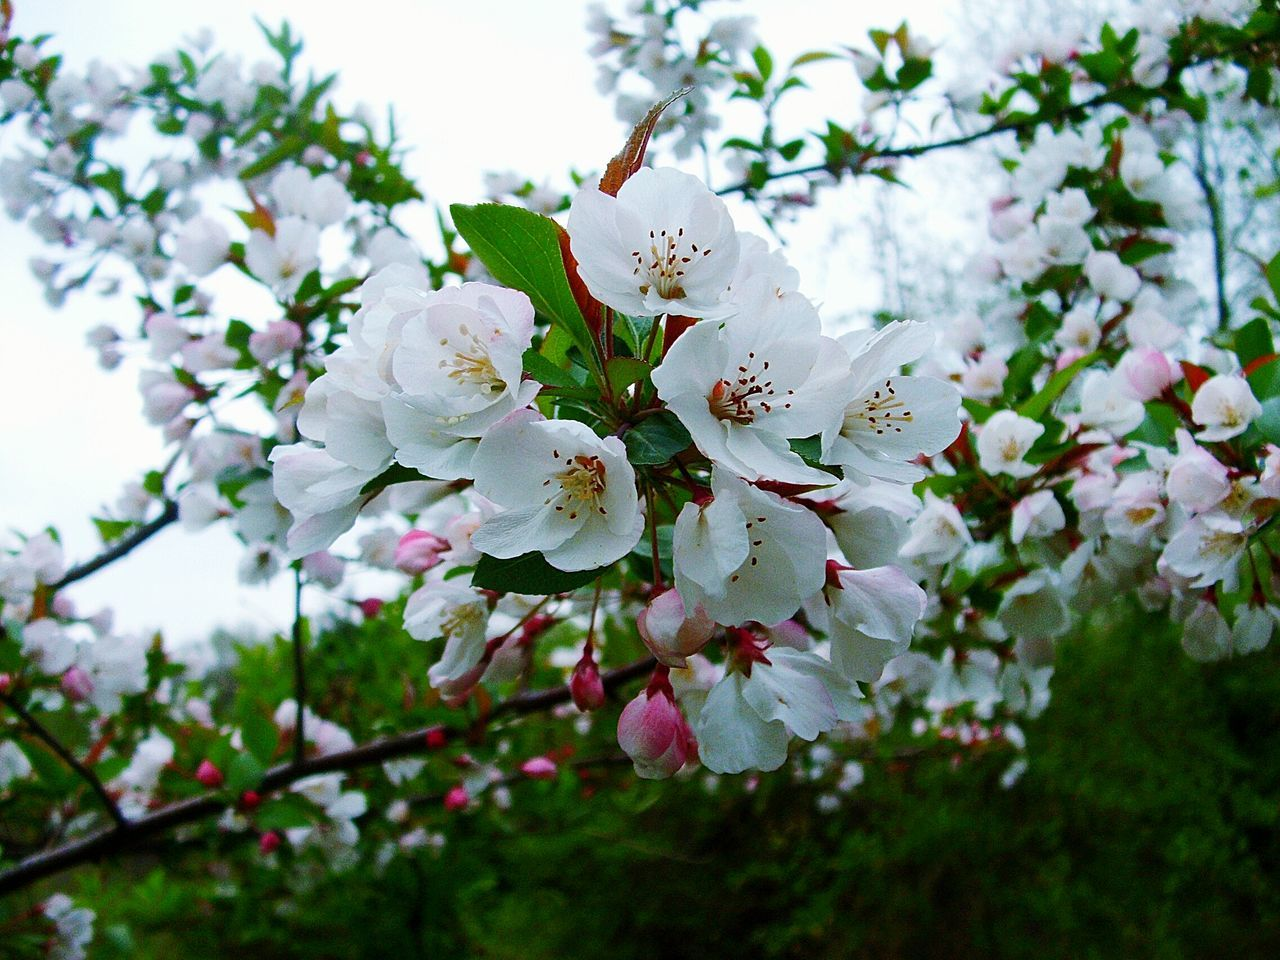 flower, white color, fragility, beauty in nature, blossom, tree, apple blossom, nature, springtime, growth, branch, freshness, apple tree, petal, botany, no people, orchard, twig, close-up, low angle view, day, pollen, blooming, stamen, flower head, outdoors, sky